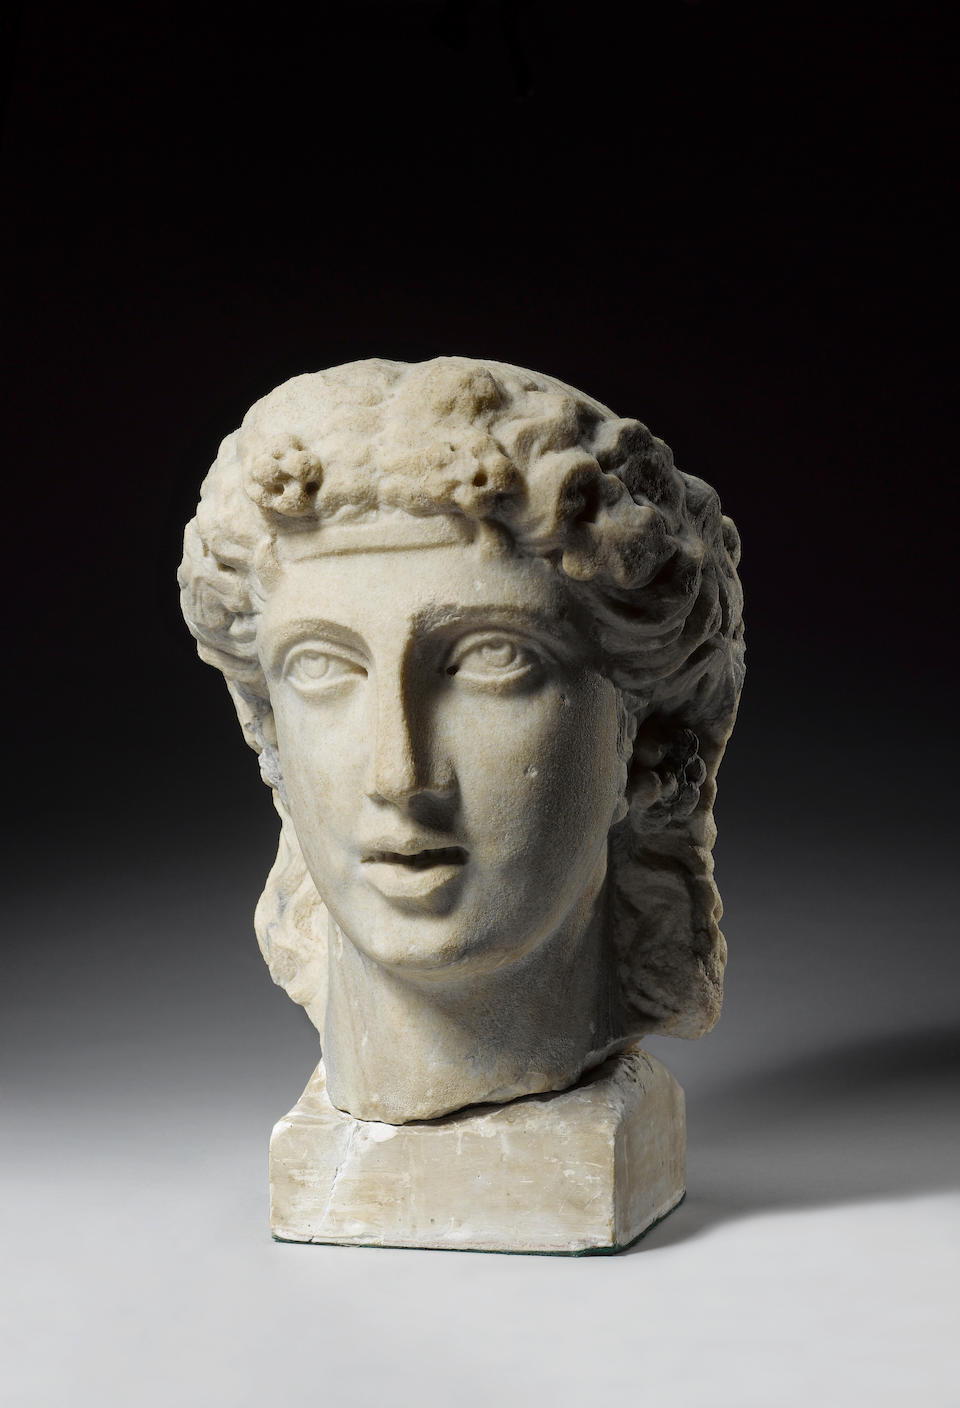 The 'Beth-Shan' Bust; A monumental Roman marble double herm, with a set of six black and white photographic glass plates, mounted on a plinth